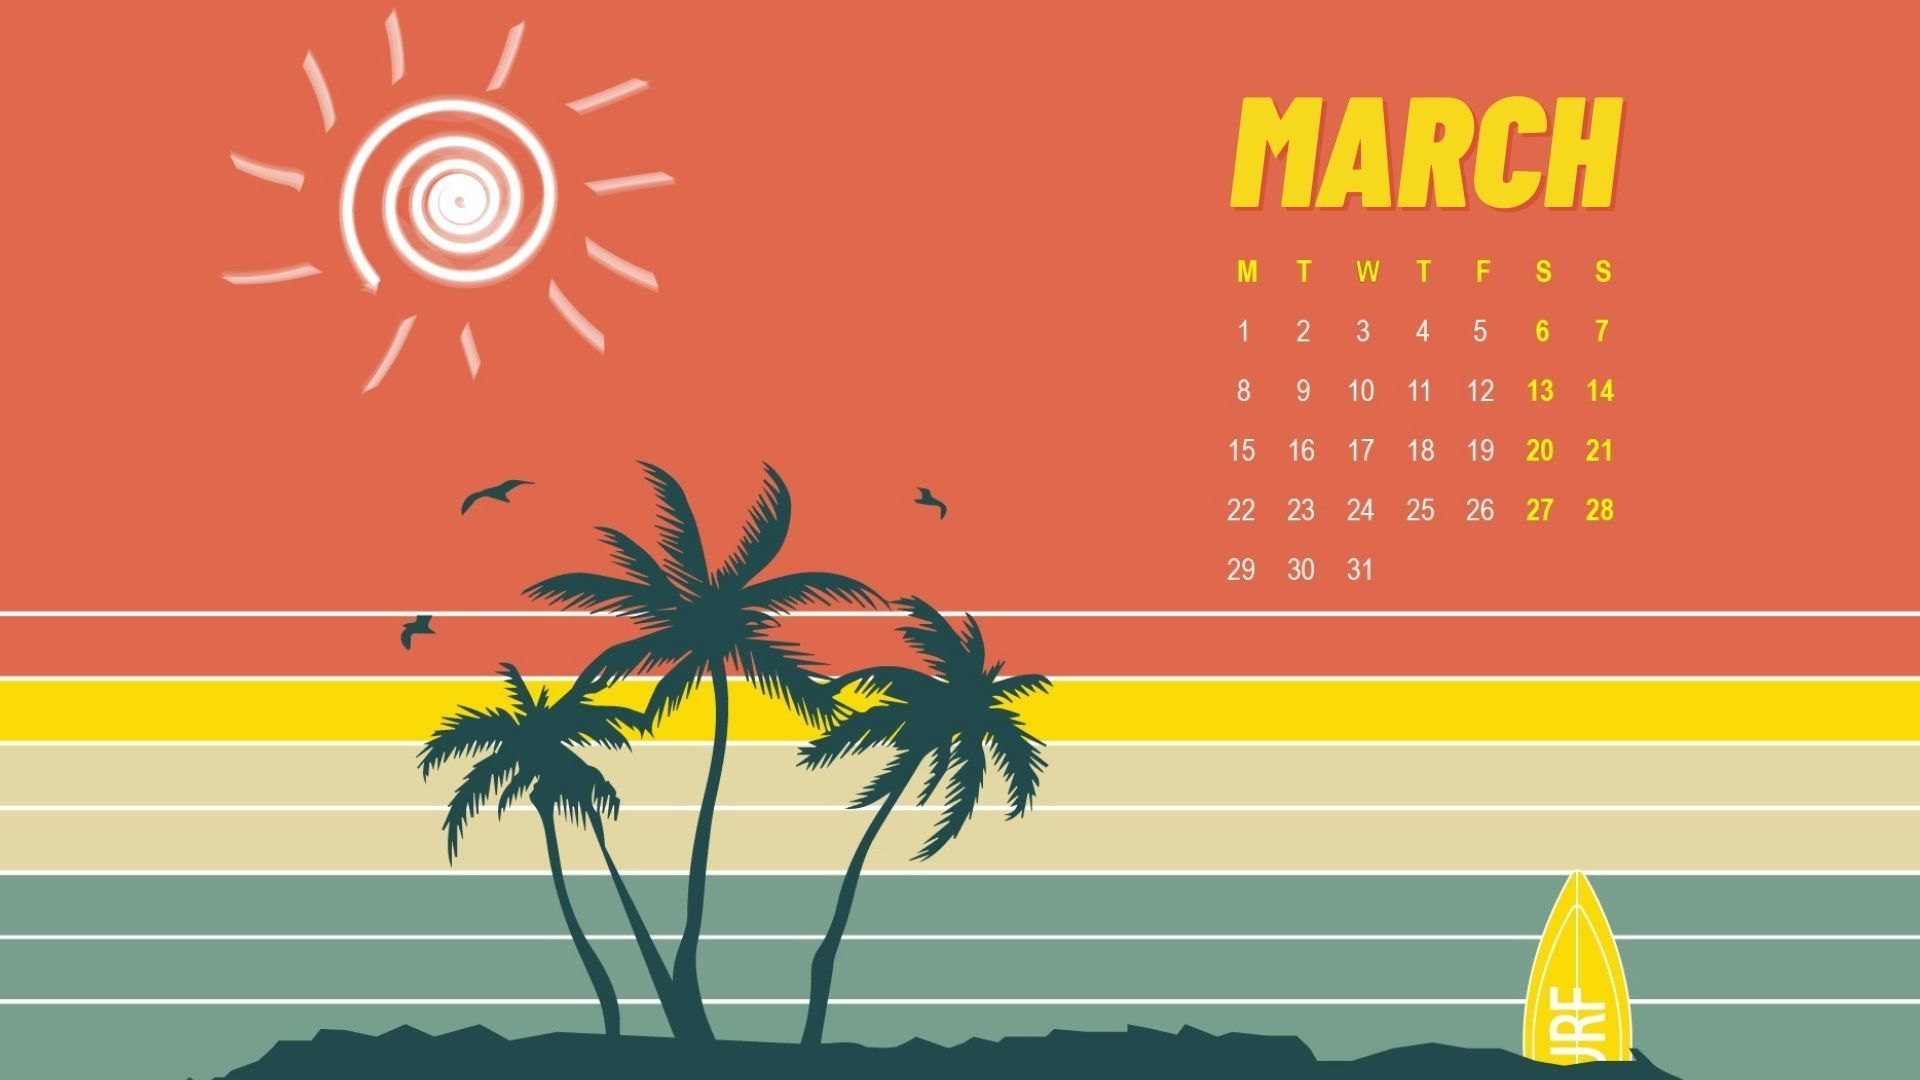 March 2021 HD calendar wallpaper download in high definition